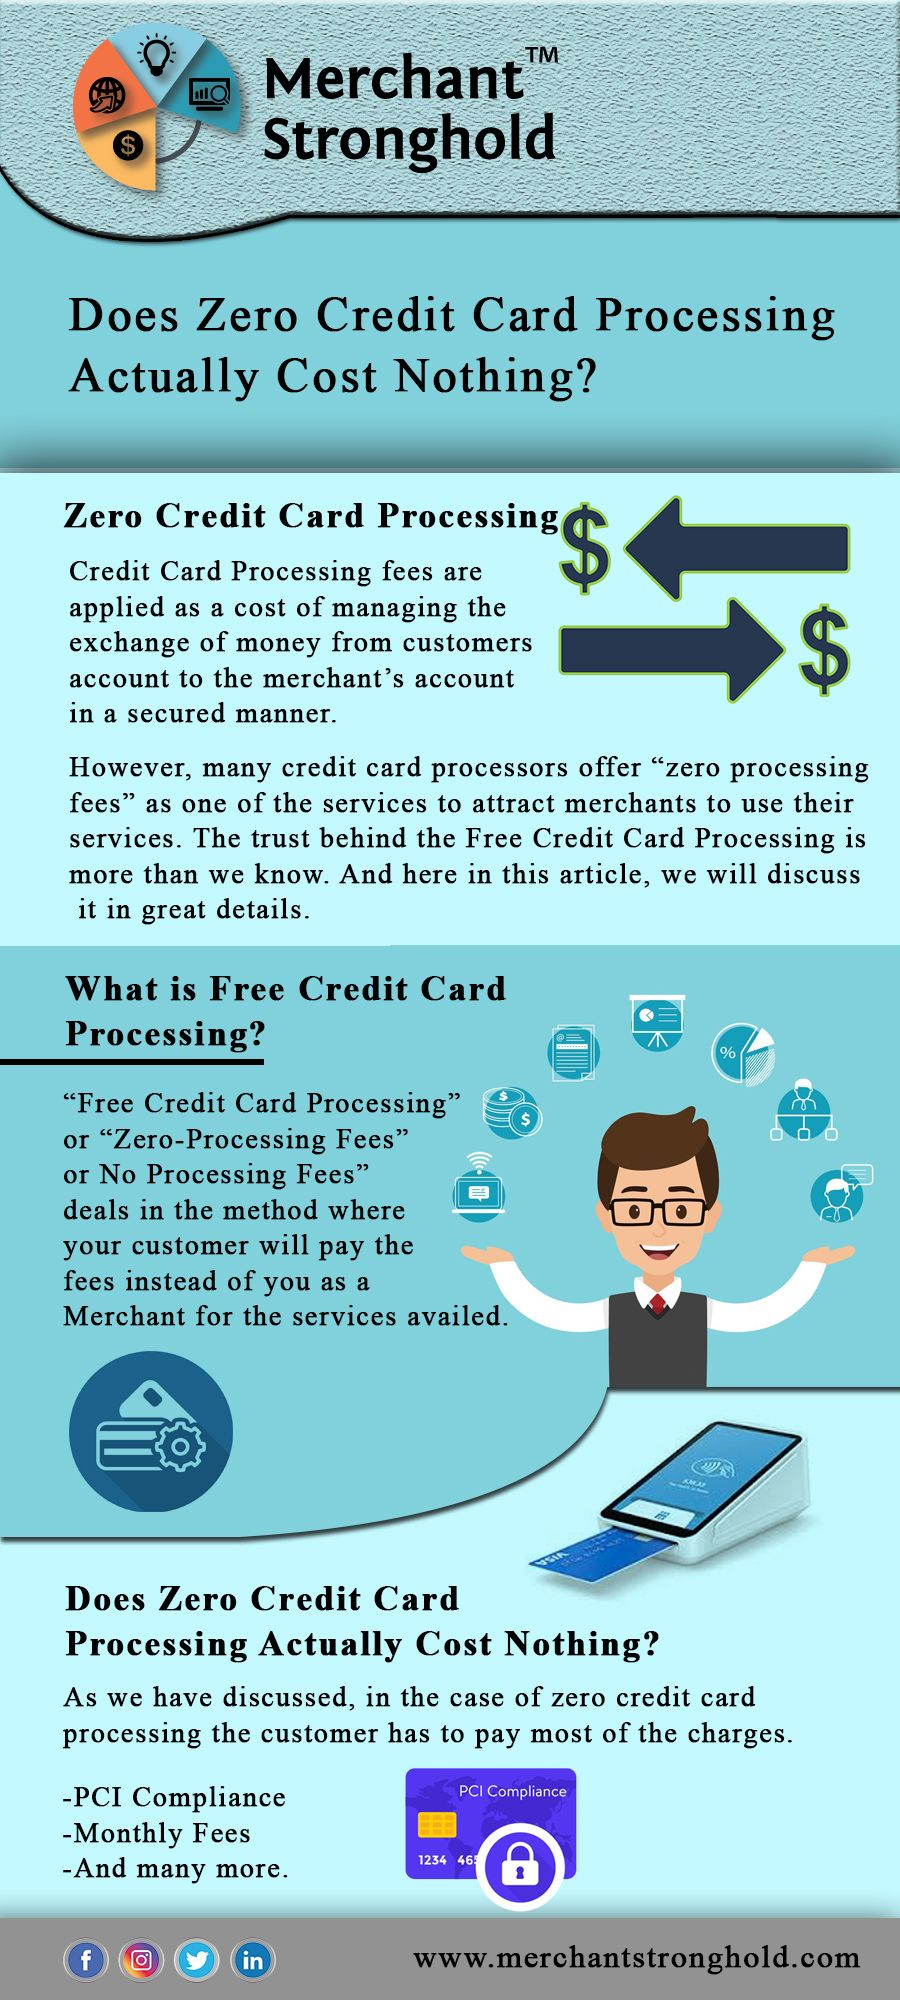 Credit Card Processing fees are applied as a cost of